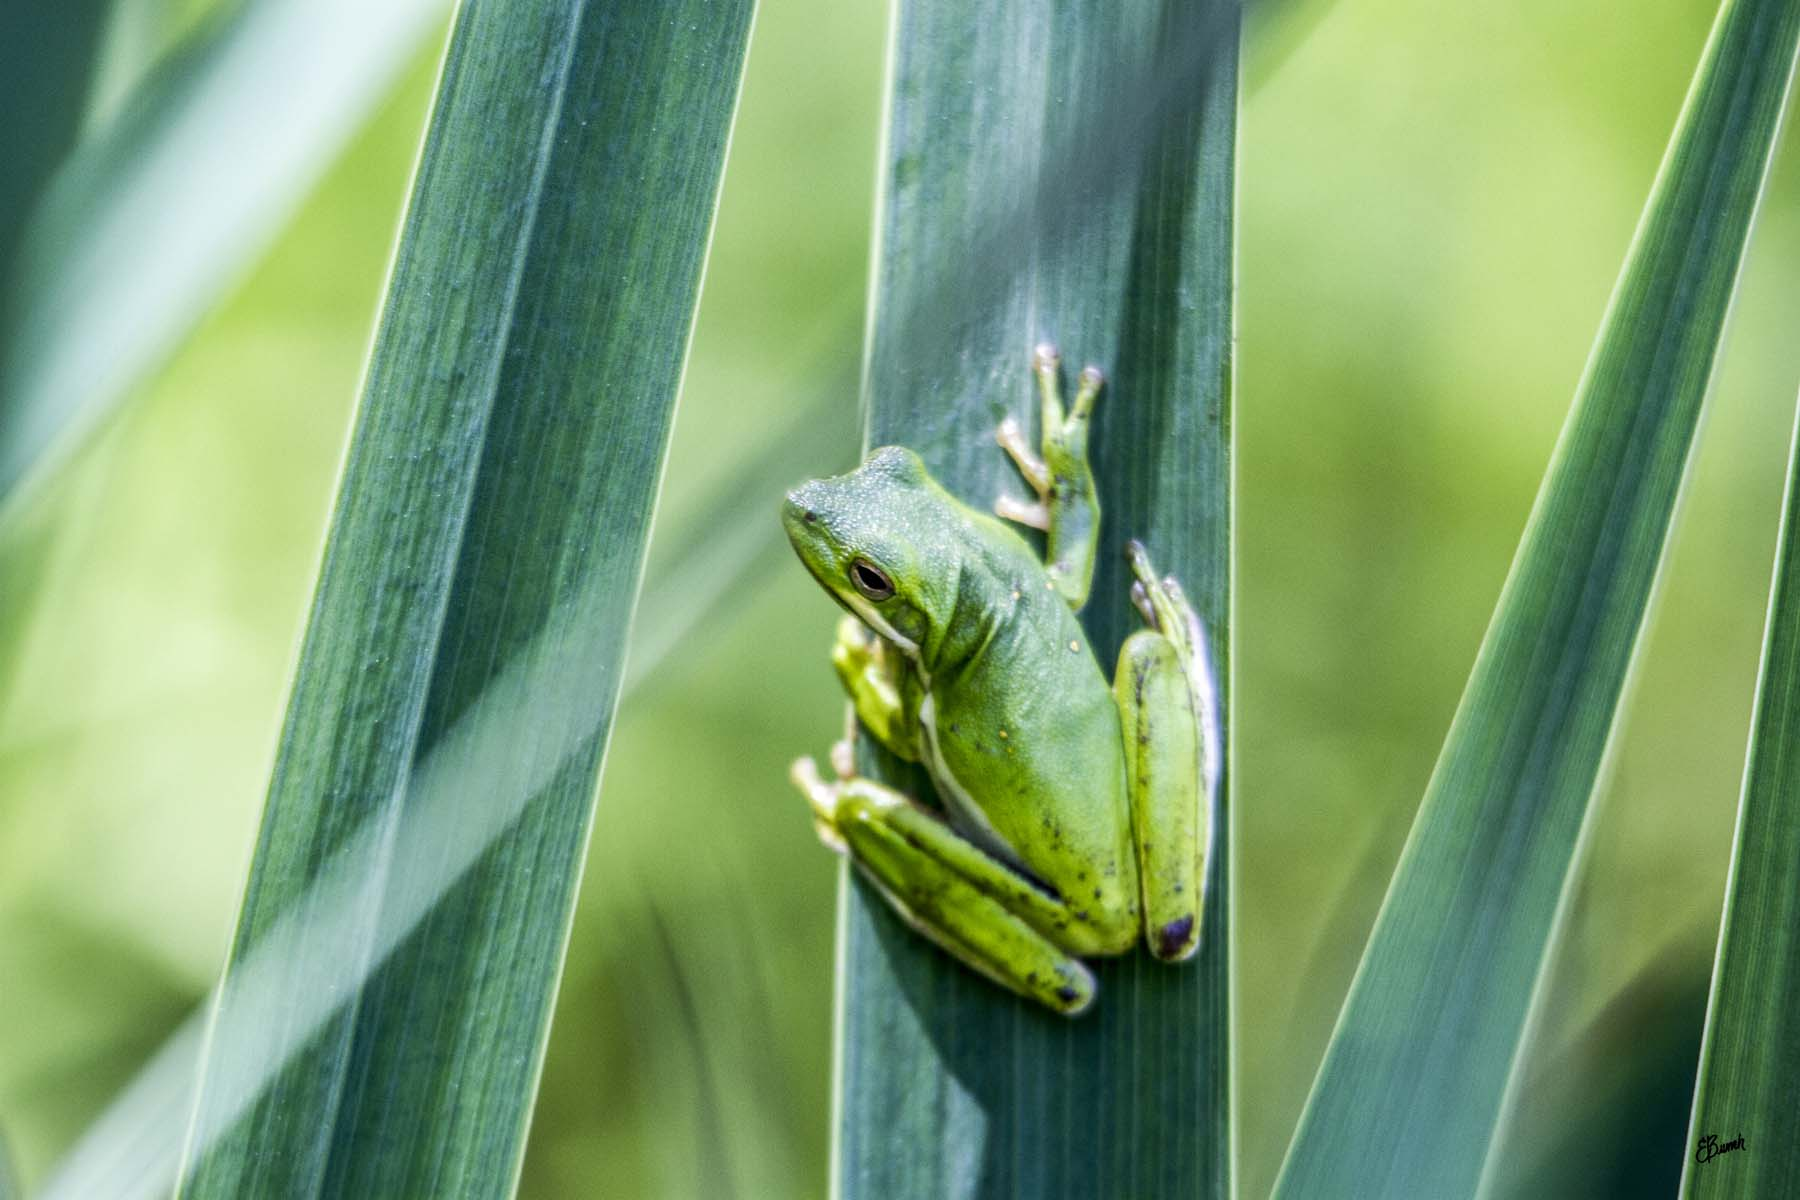 This image is of a green treefrog sitting on an iris leaf. They are looking left and back. They are bright green with small yellow spots on their back and a tan stripe down the side.